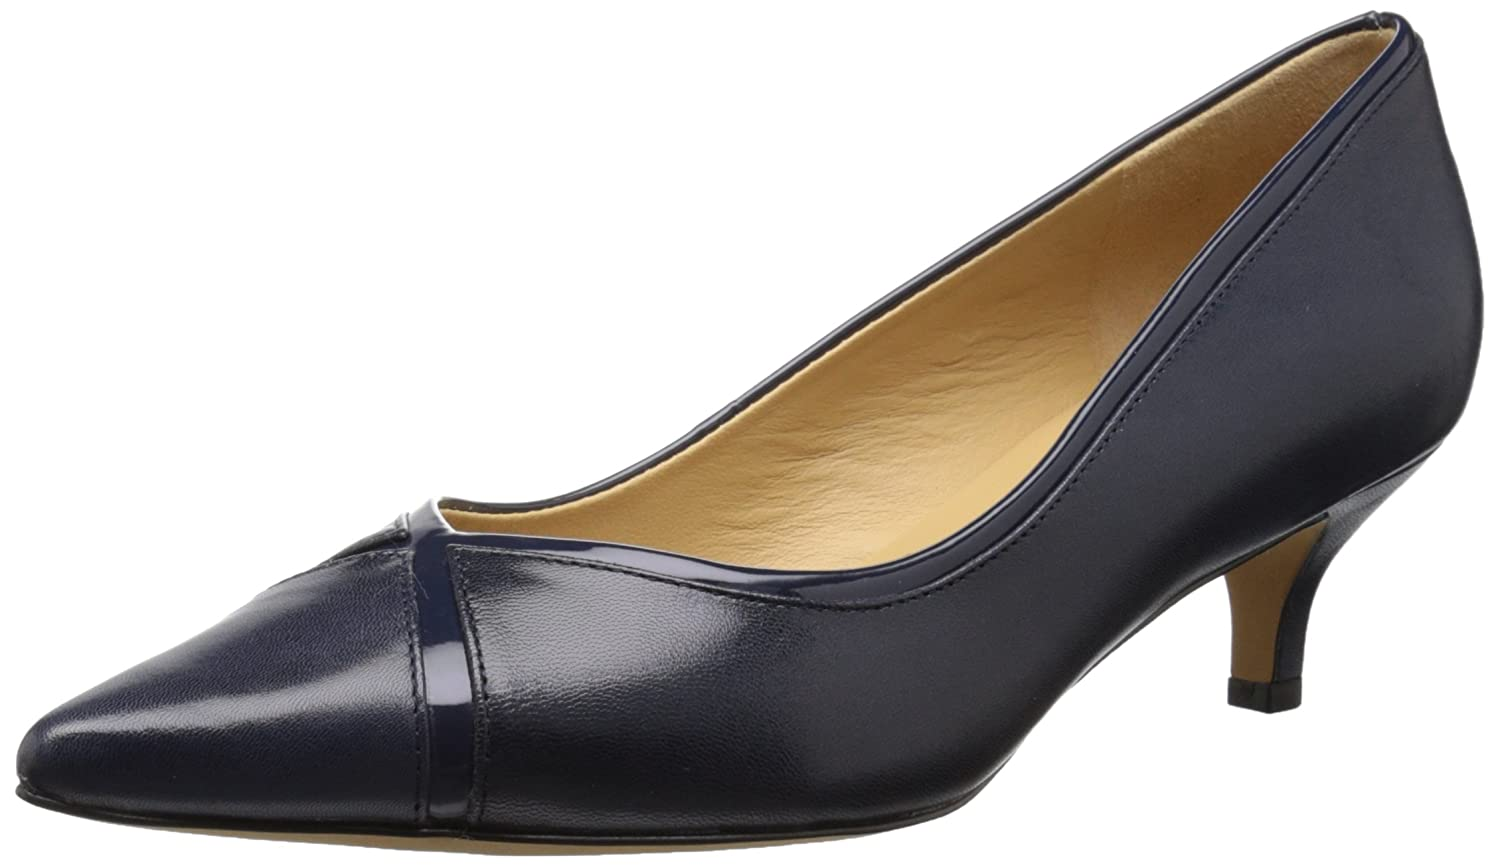 Trotters Women's Kelsey Dress Pump B011EZGZLC 10 B(M) US|Navy